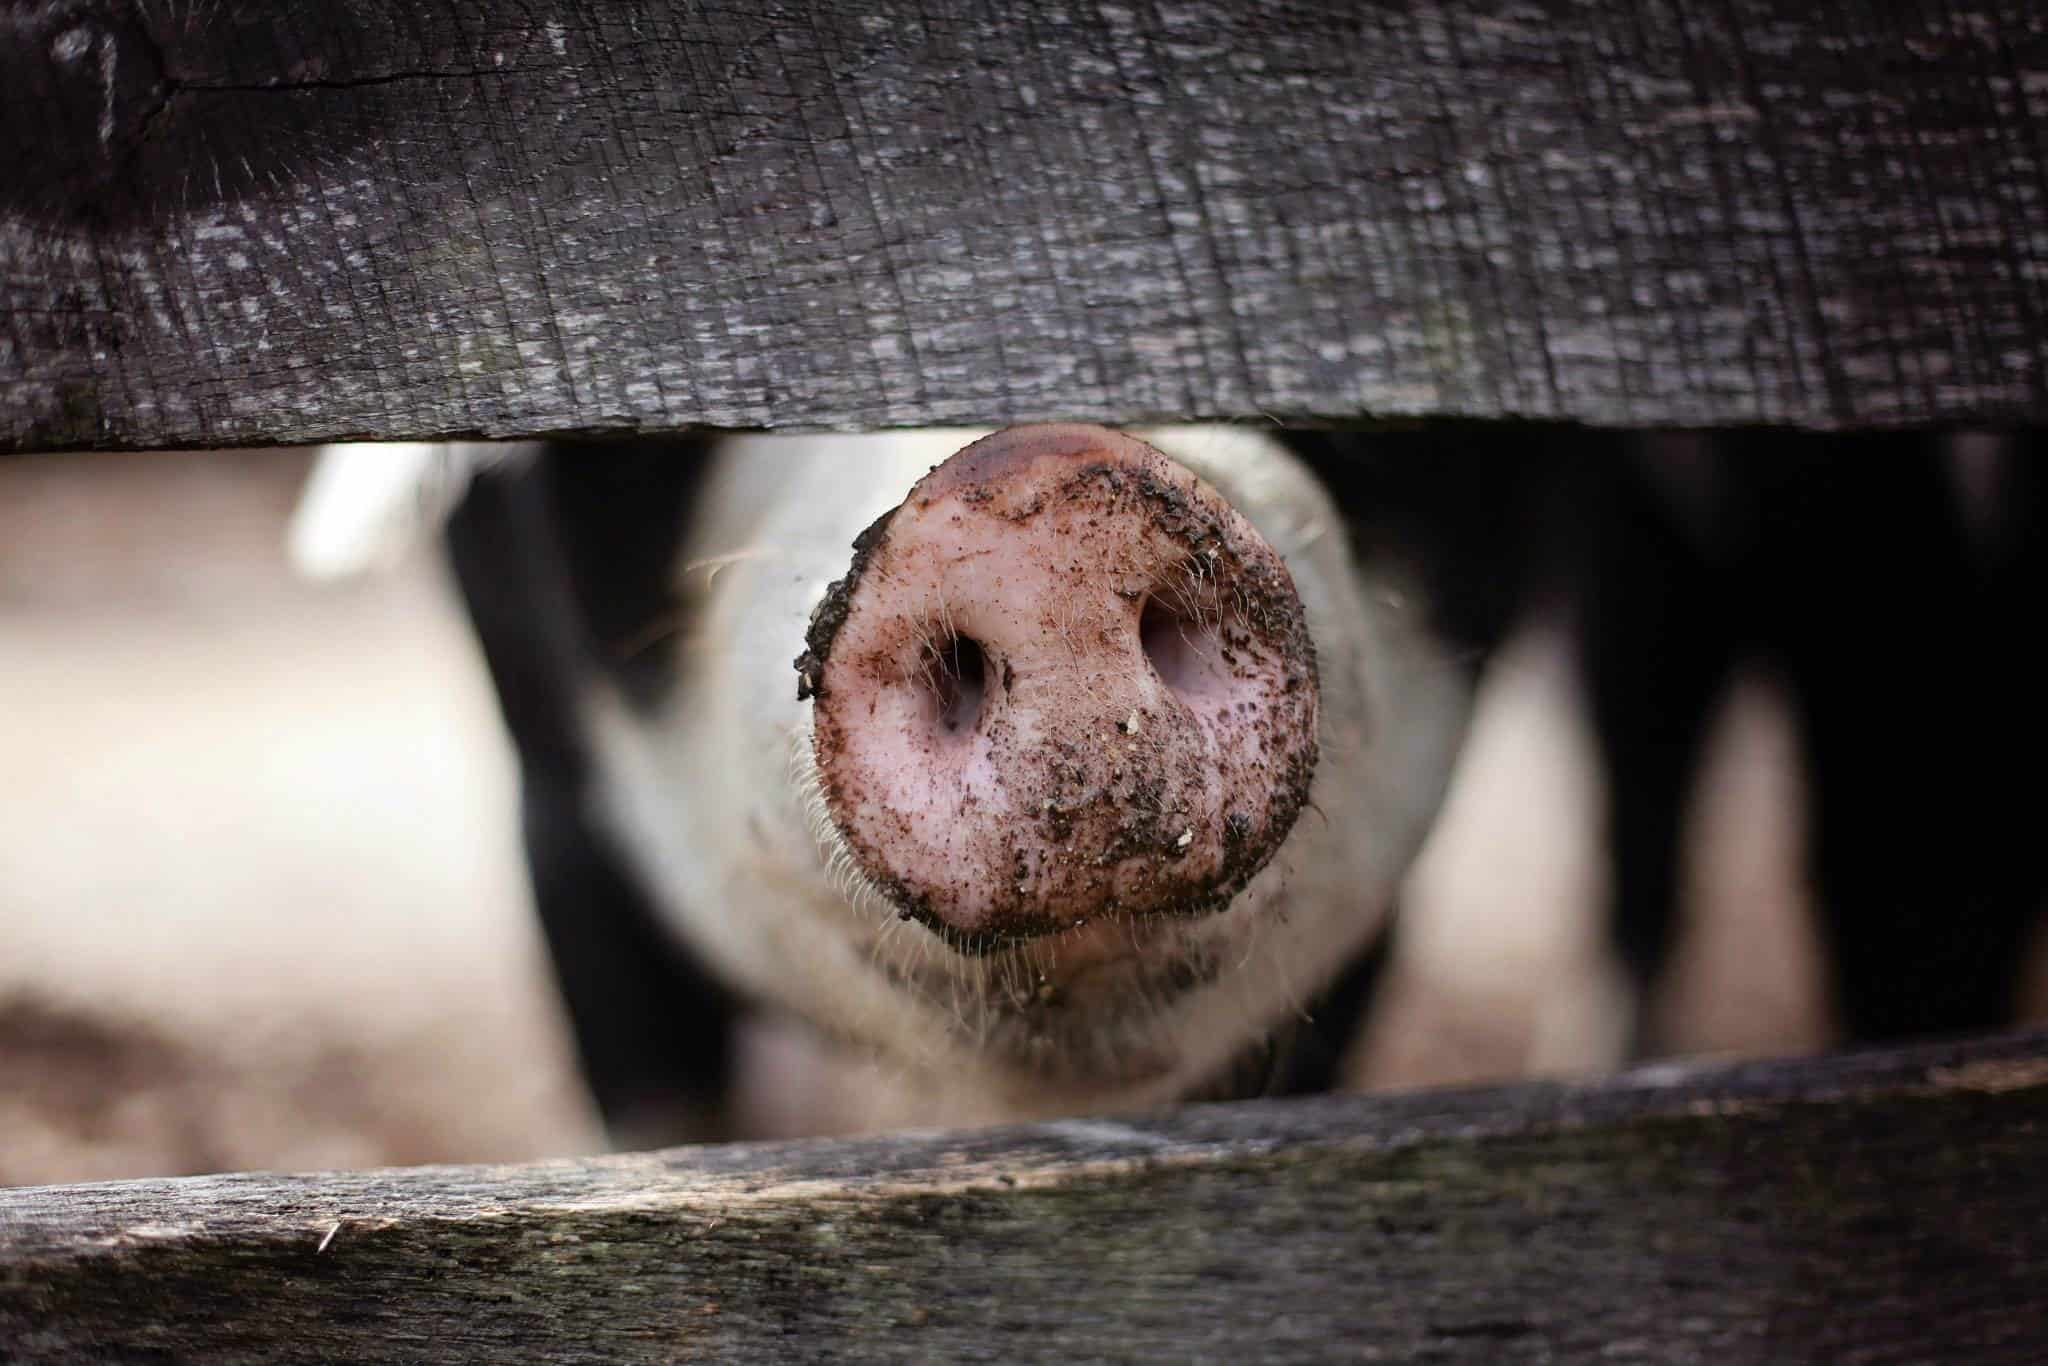 why don't muslims eat pork